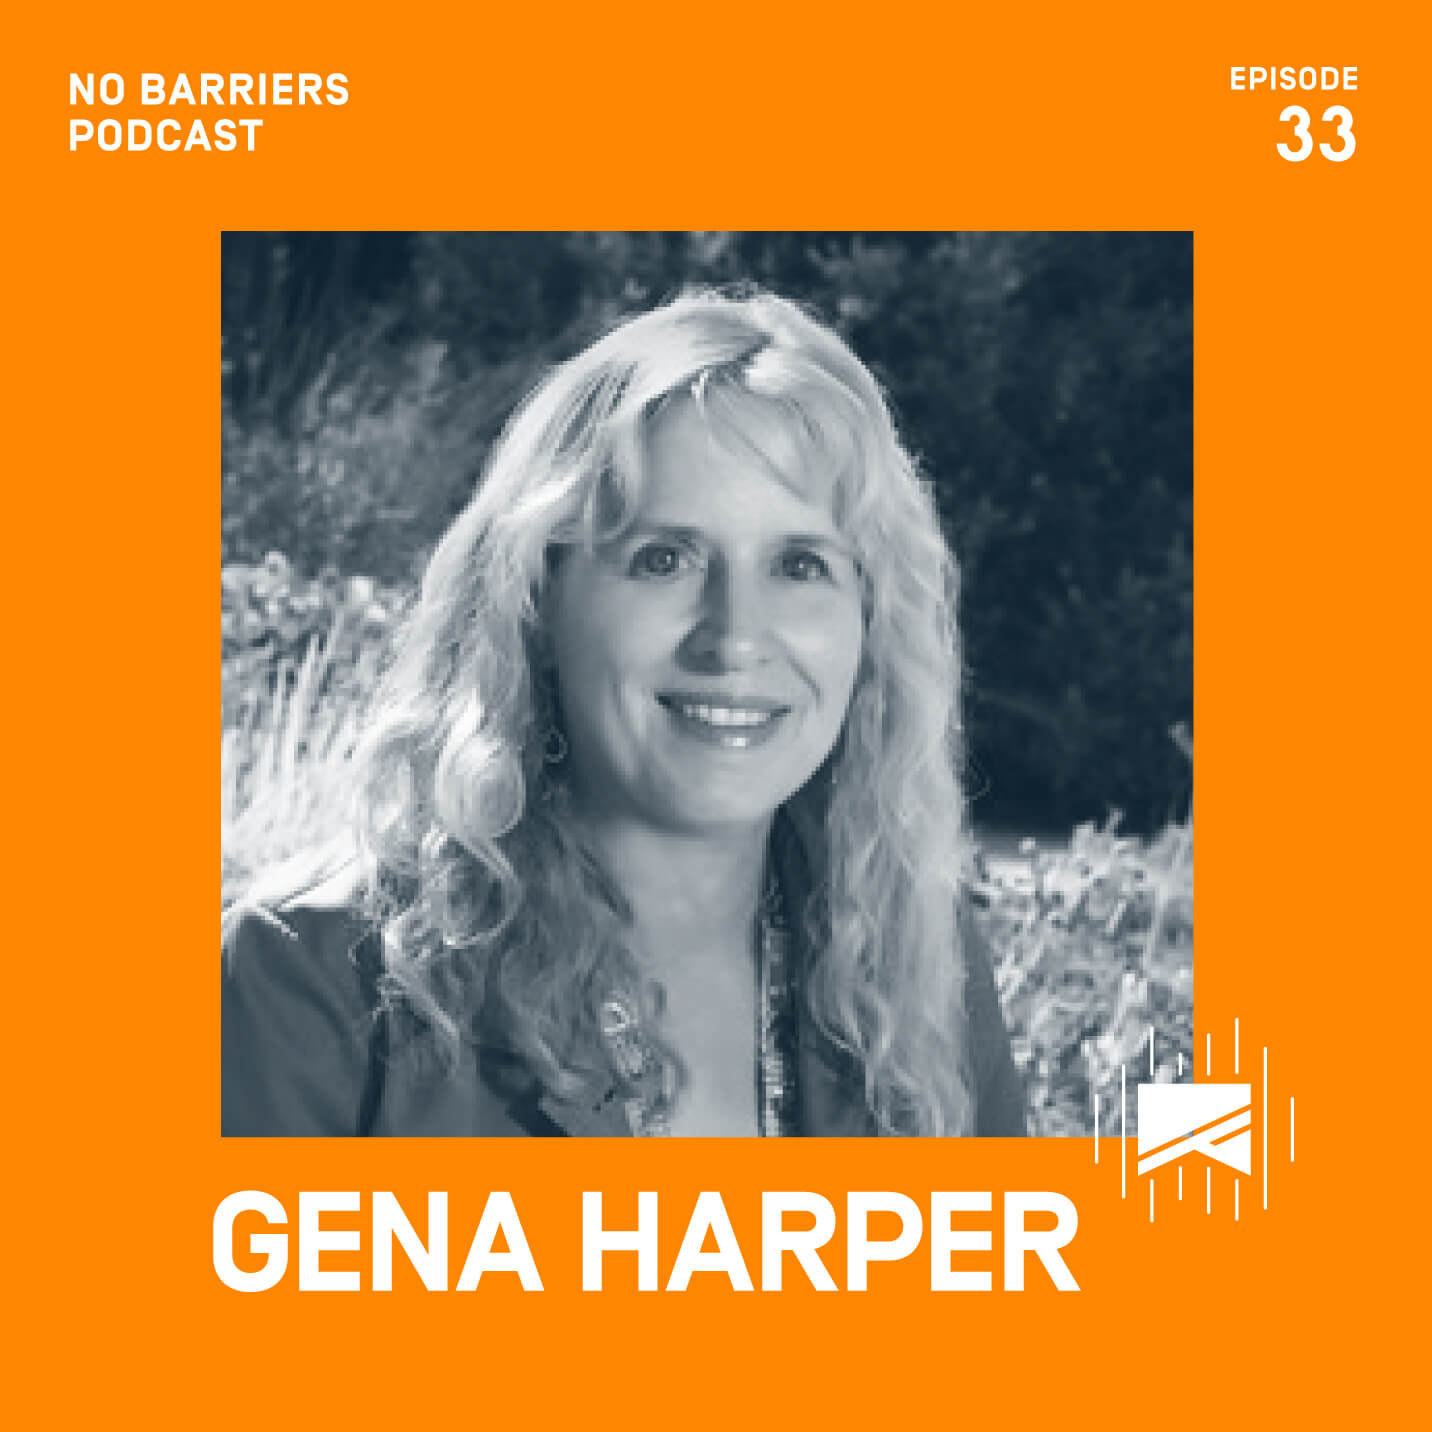 gena harper businesswoman and adventurer who is blind